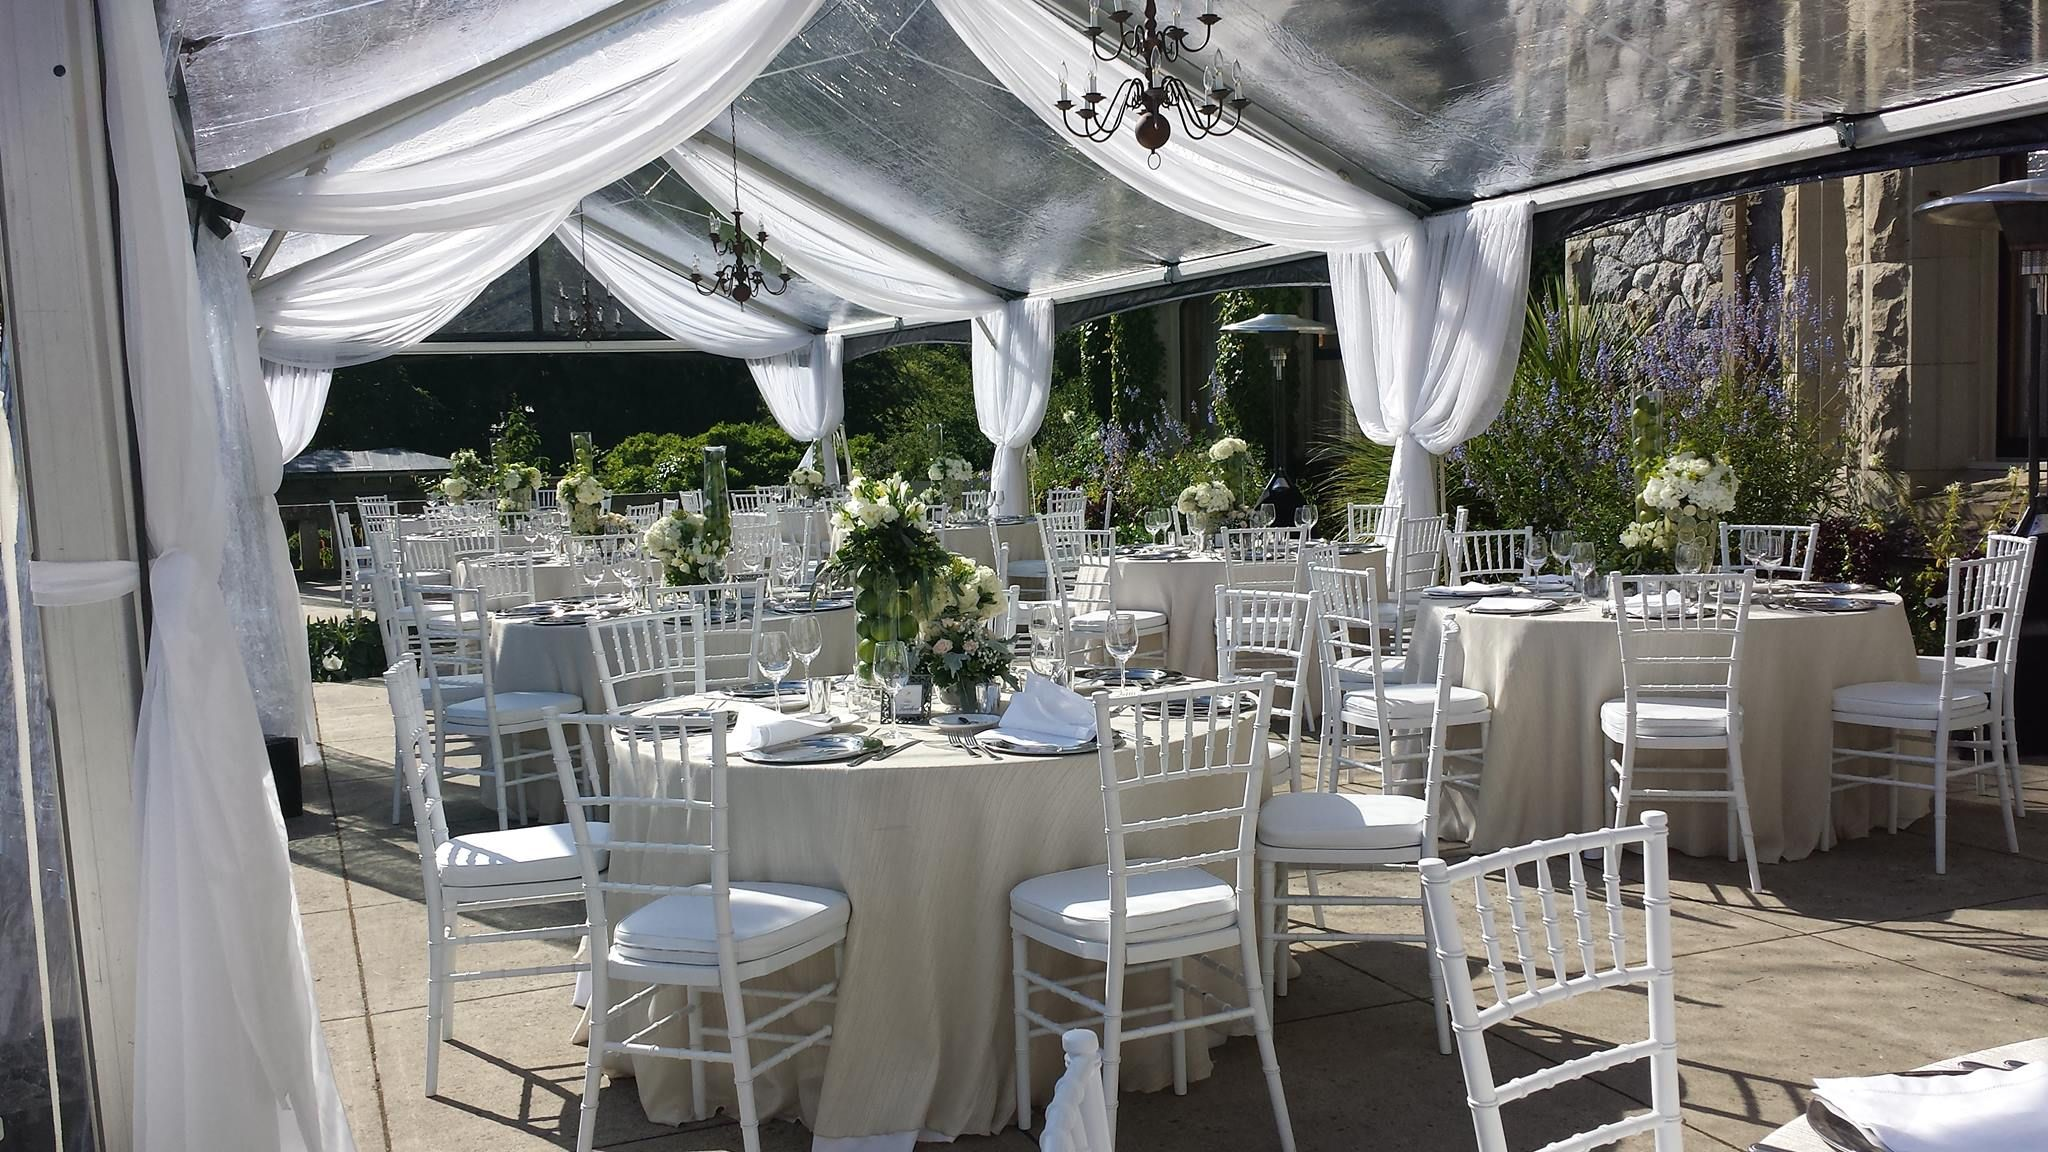 Chair Cover Rentals Victoria Bc Patterned Fabric Club Chairs Black White Party Parksville Vancouver Island Weddings